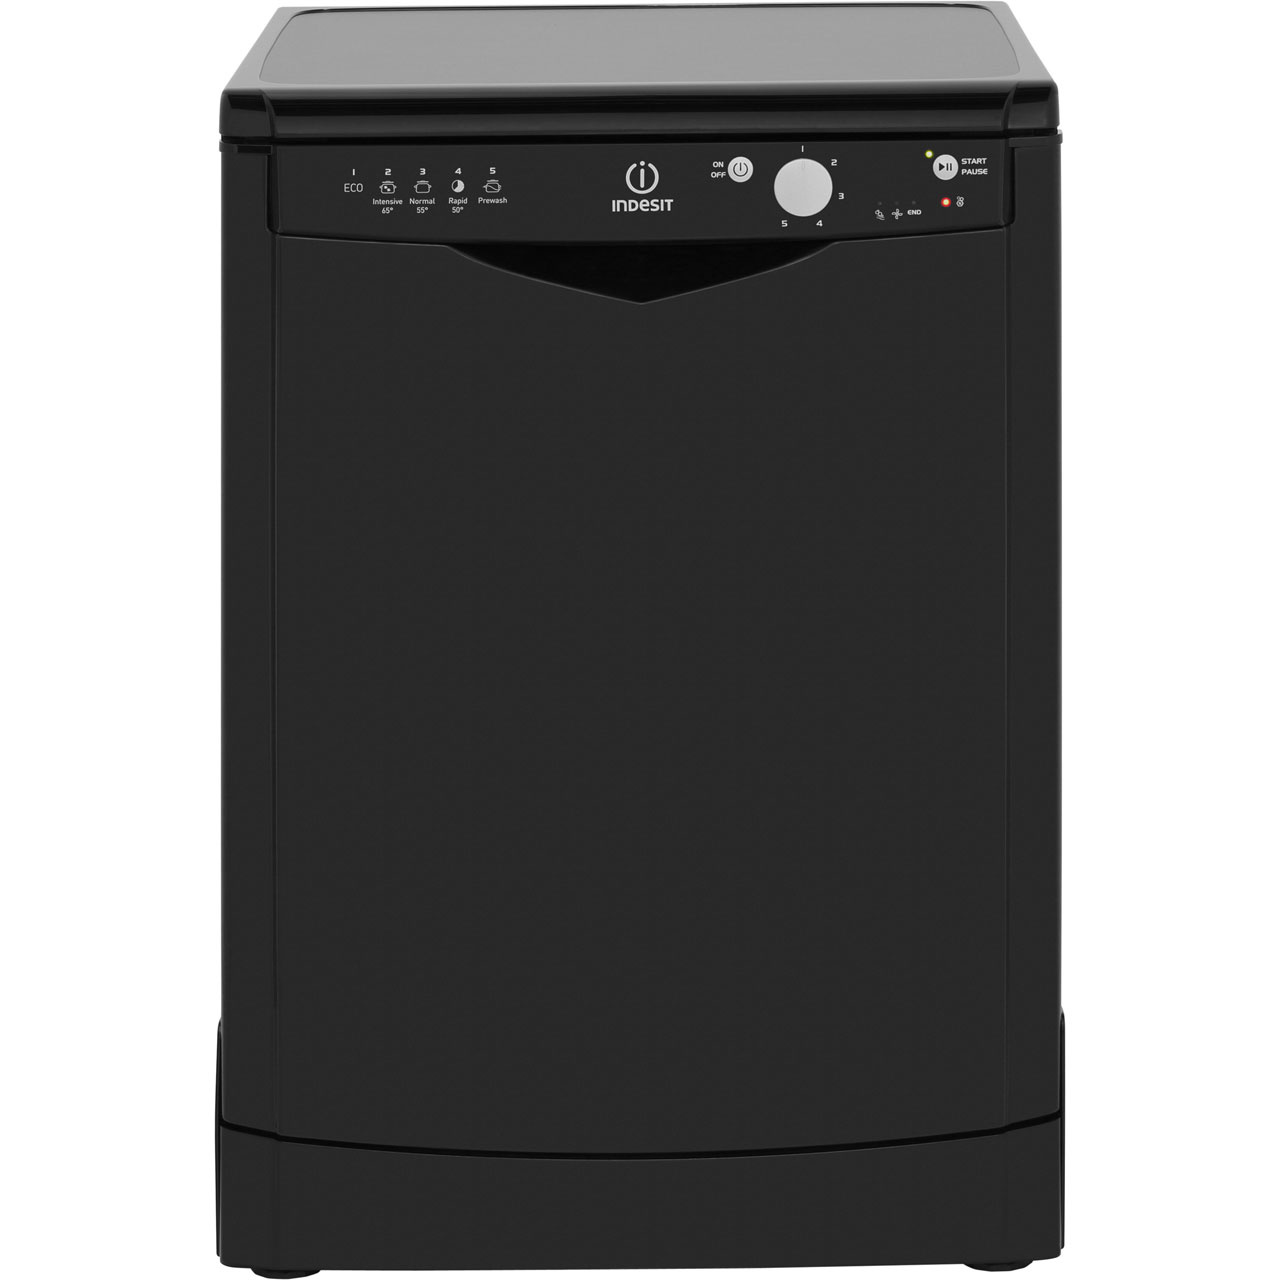 Indesit DFG15B1K Free Standing Dishwasher in Black